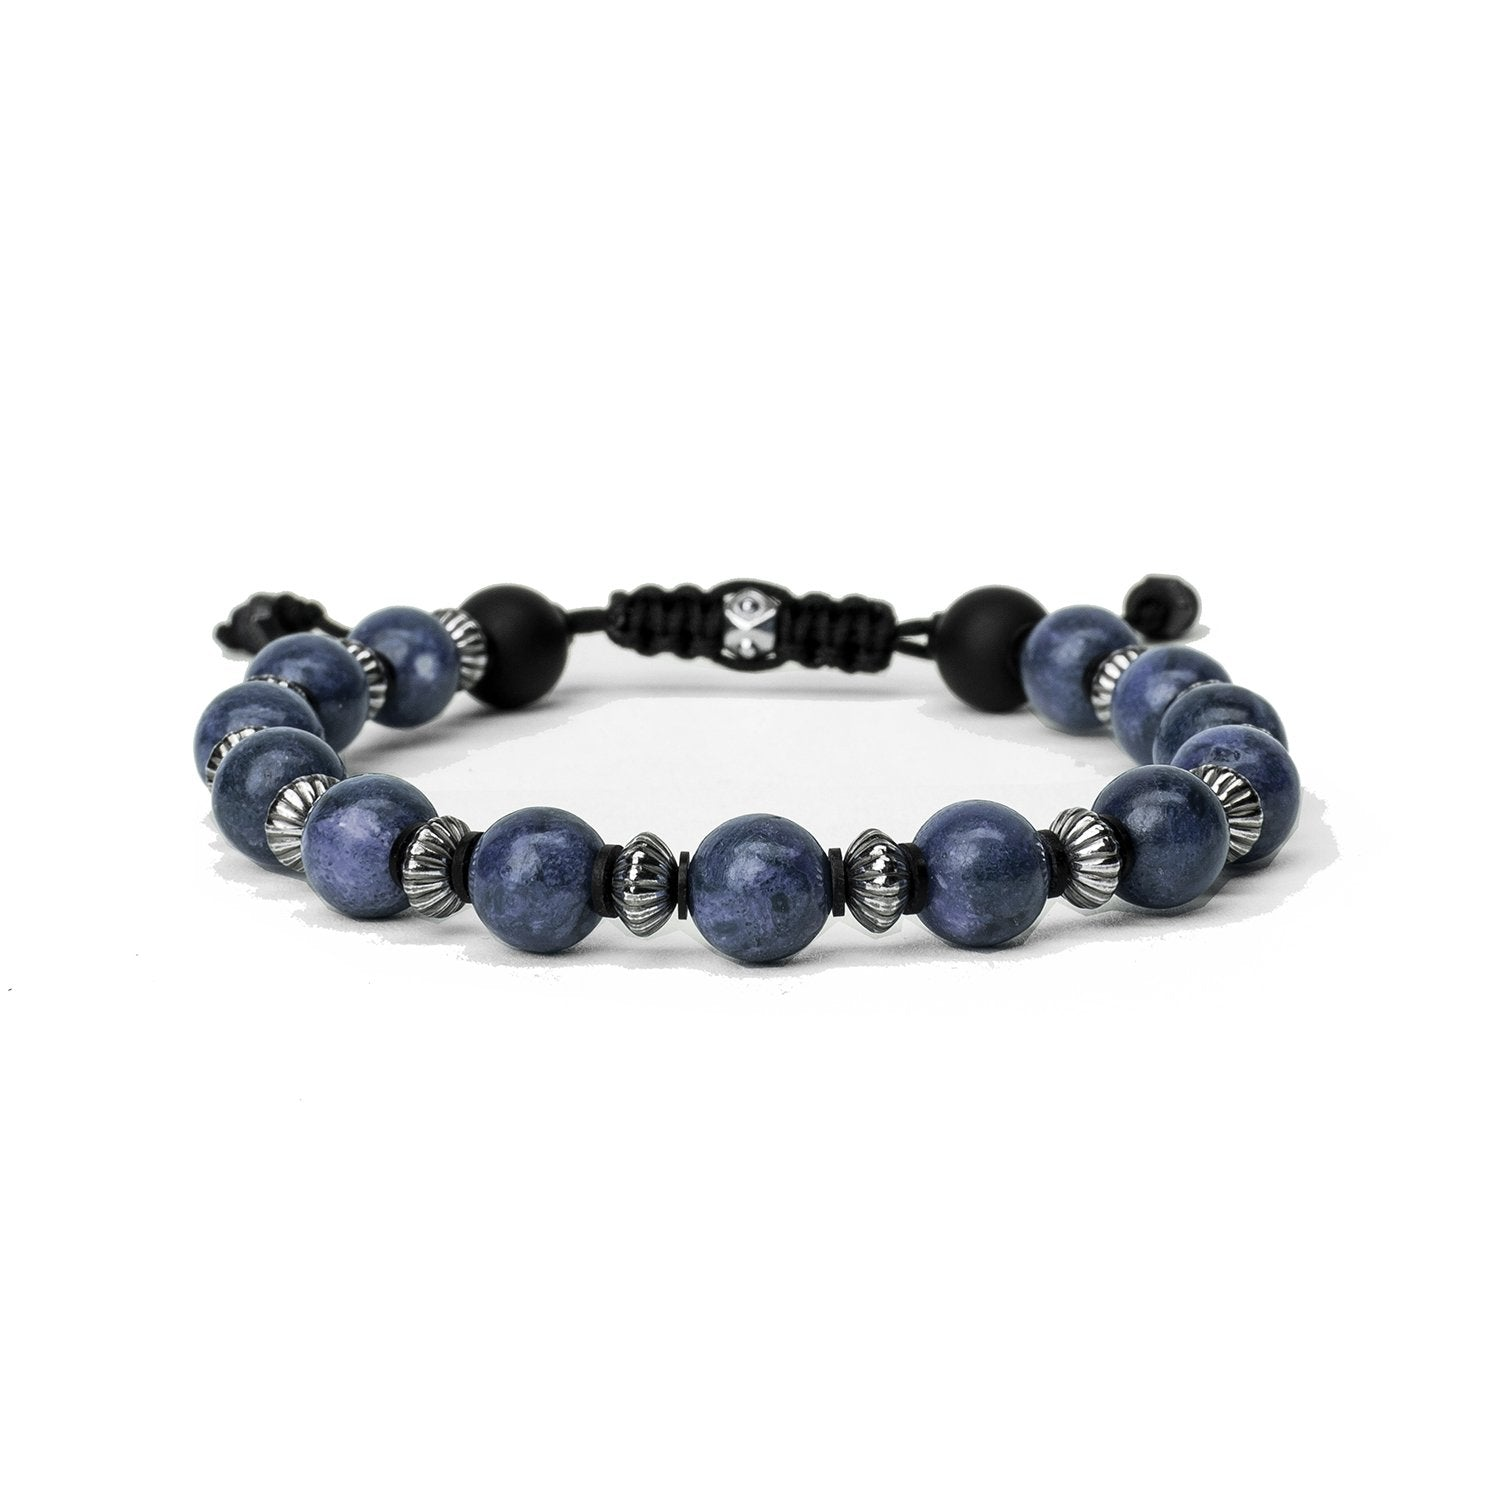 KENTON MICHAEL LARGE BLUESTONE SEQUENCE BRACELET